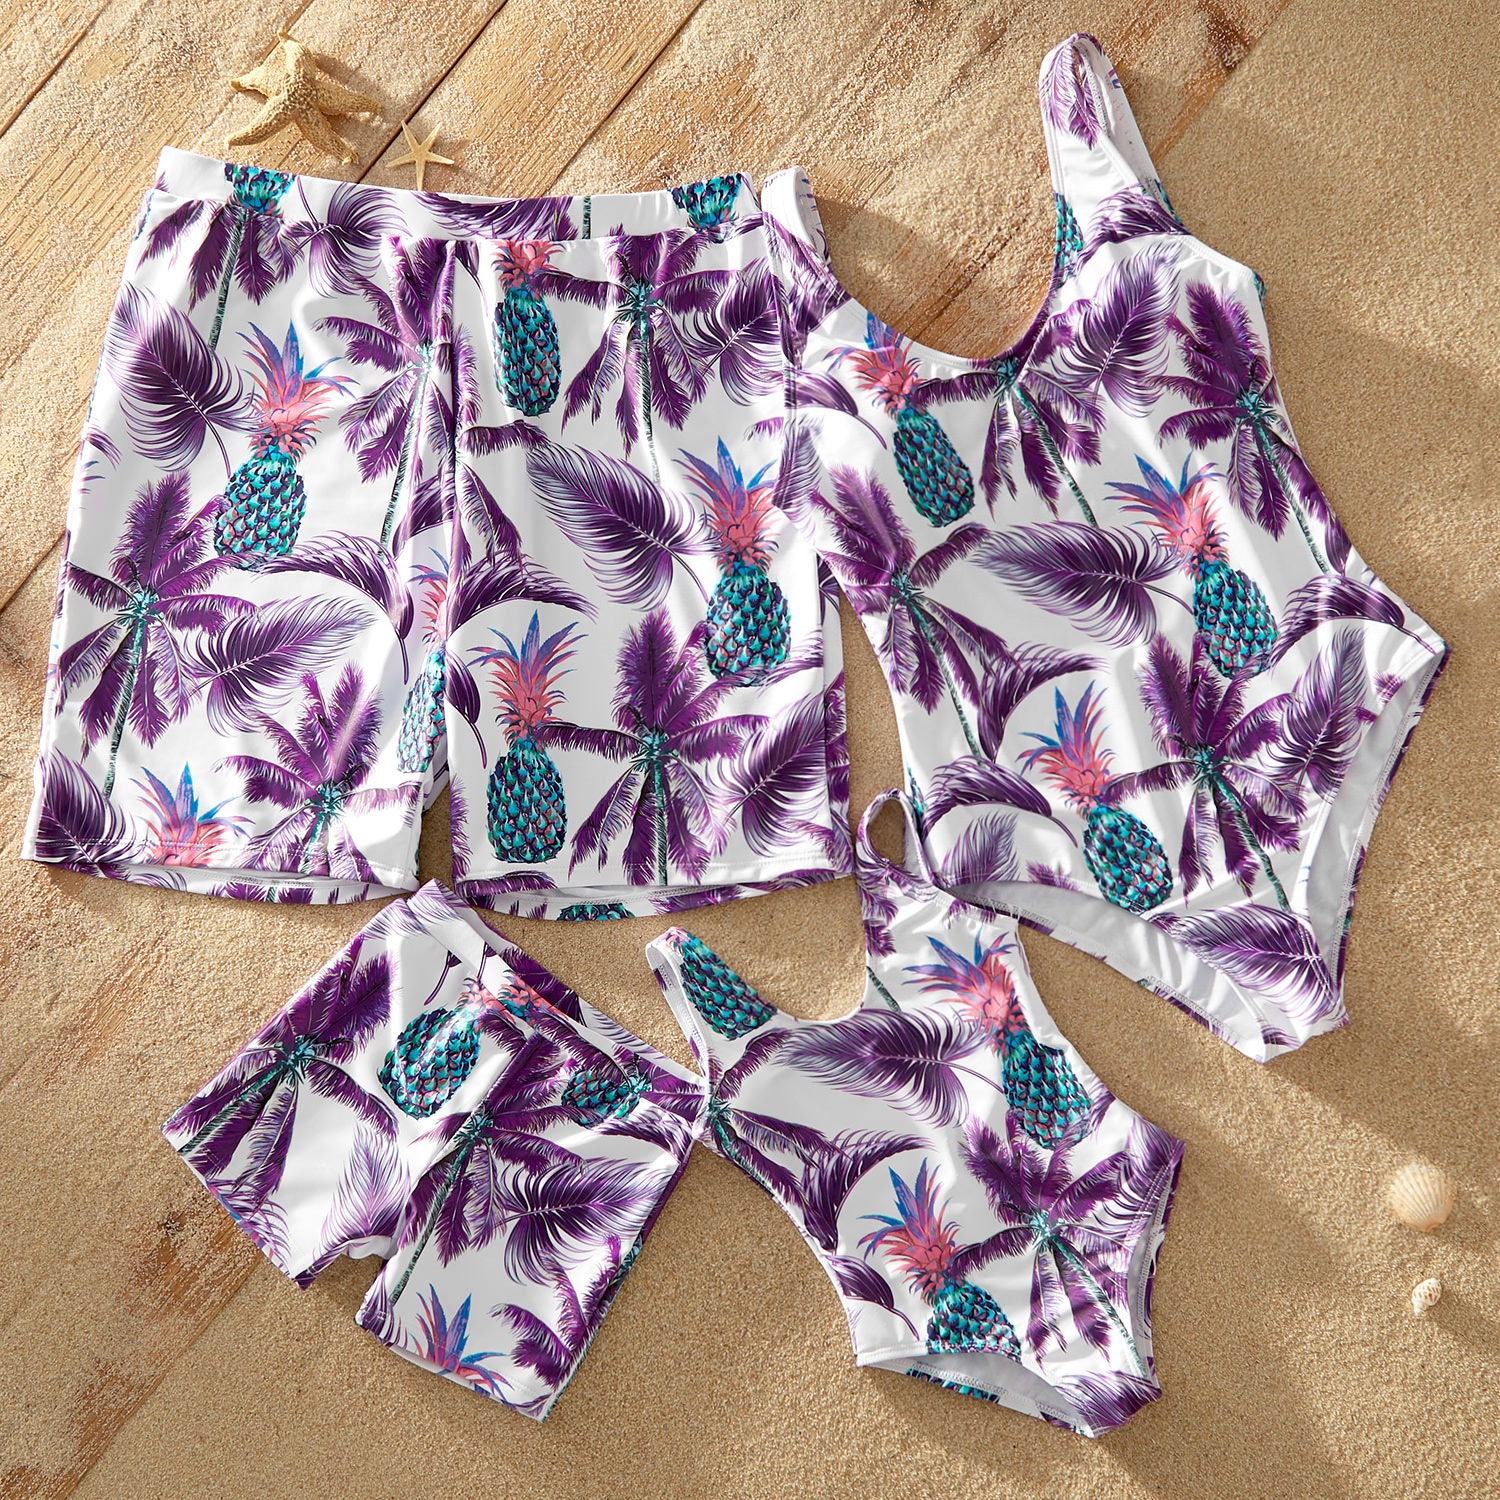 Basic Pineapple Print Matching Swimsuits